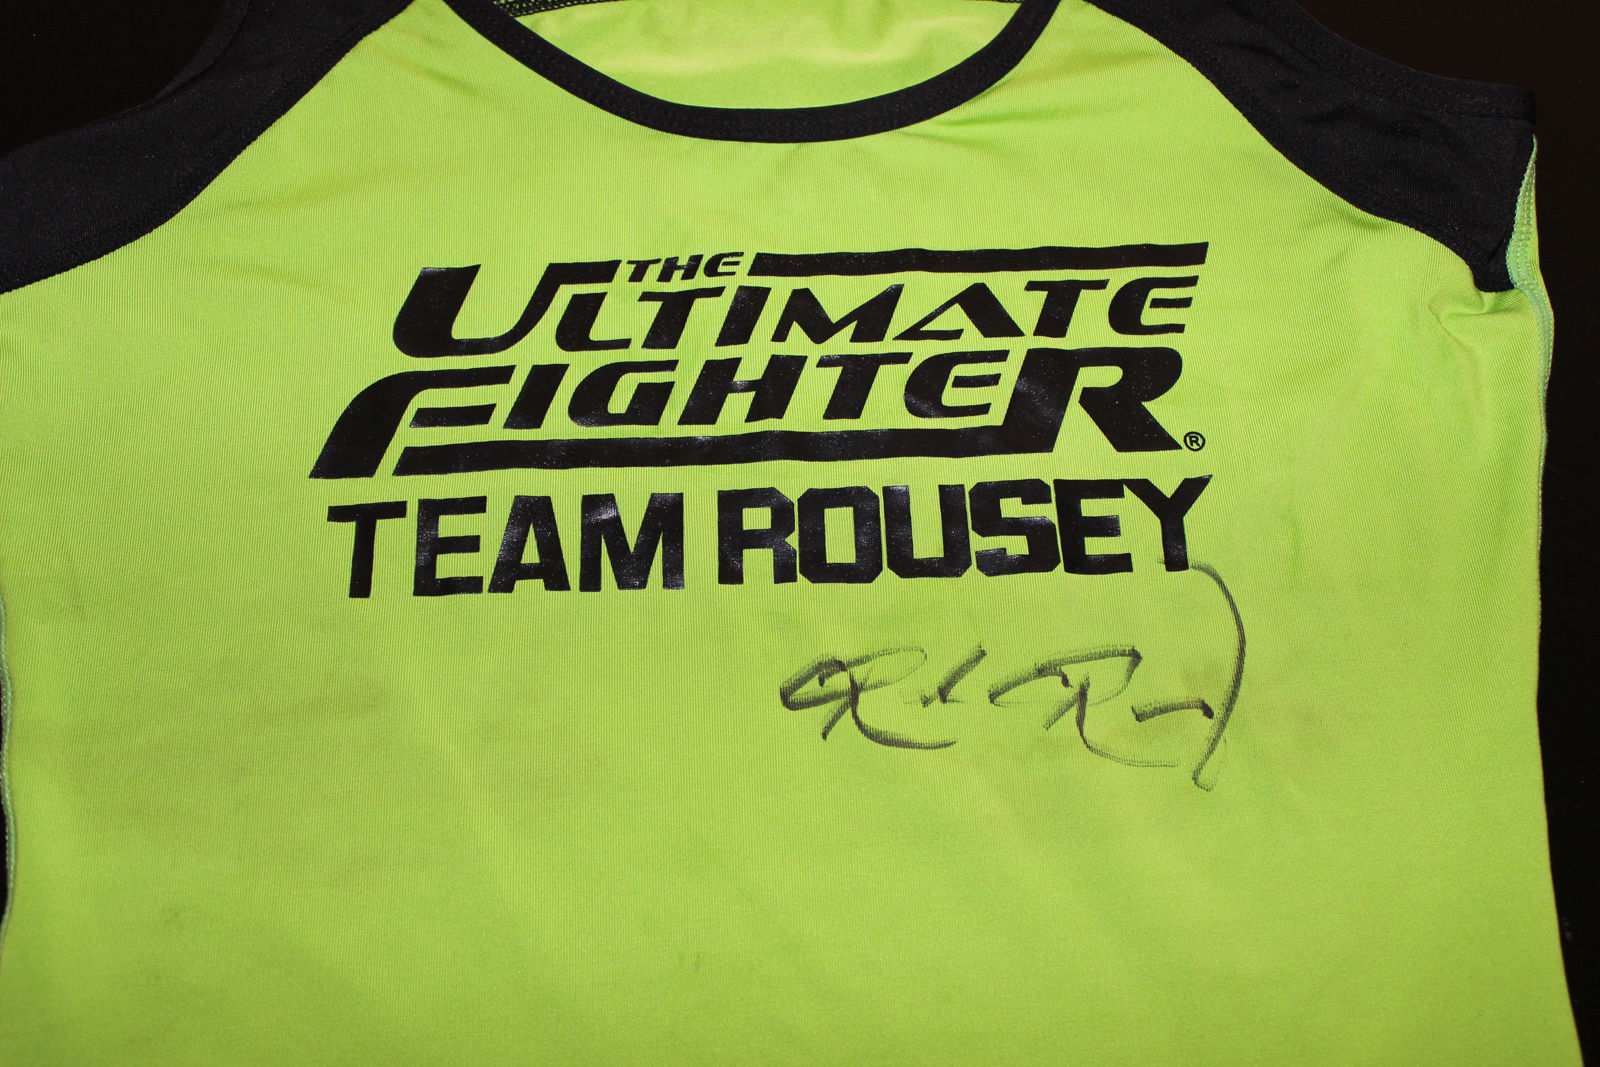 Team Rousey TUF signature